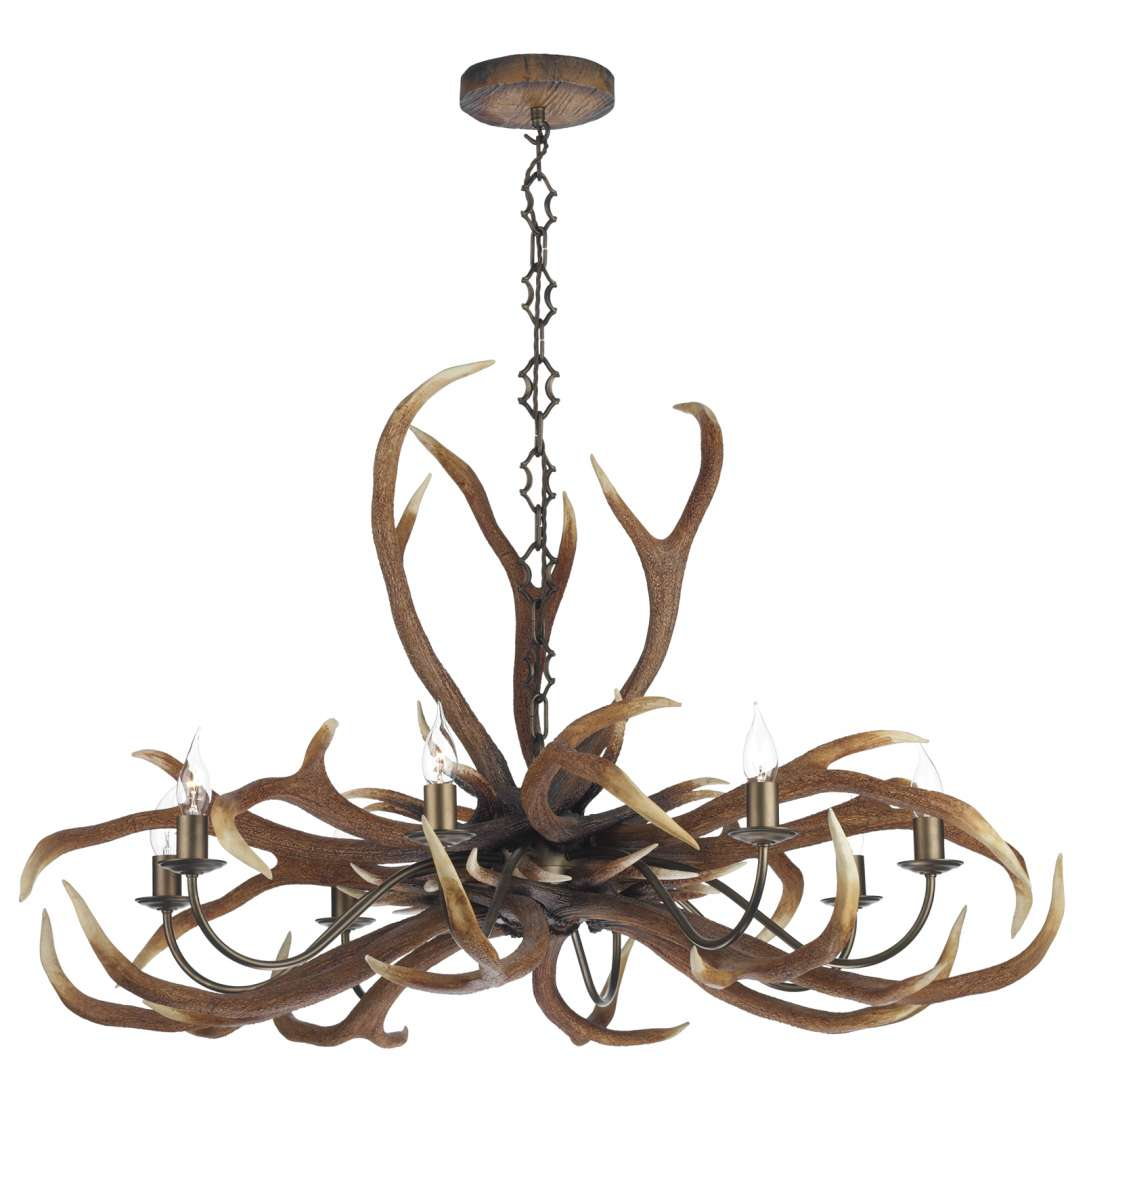 Antler Emperor 8-Light Highland Rustic Fitting